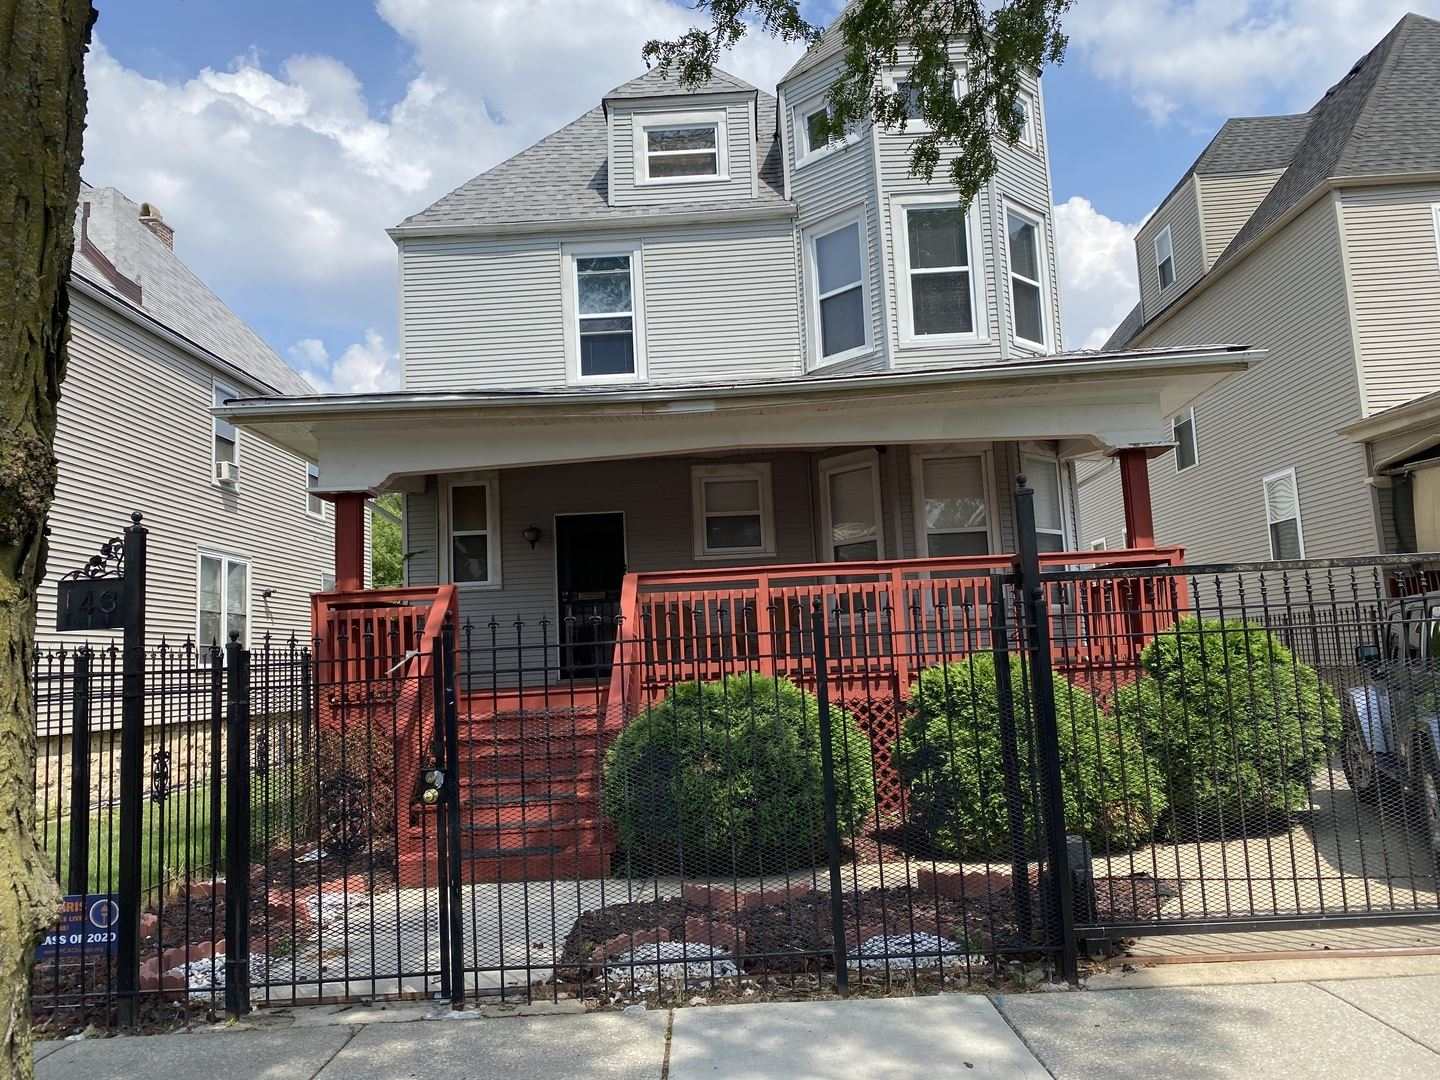 143 N Lorel Avenue, Chicago, IL 60644 - #: 10638631